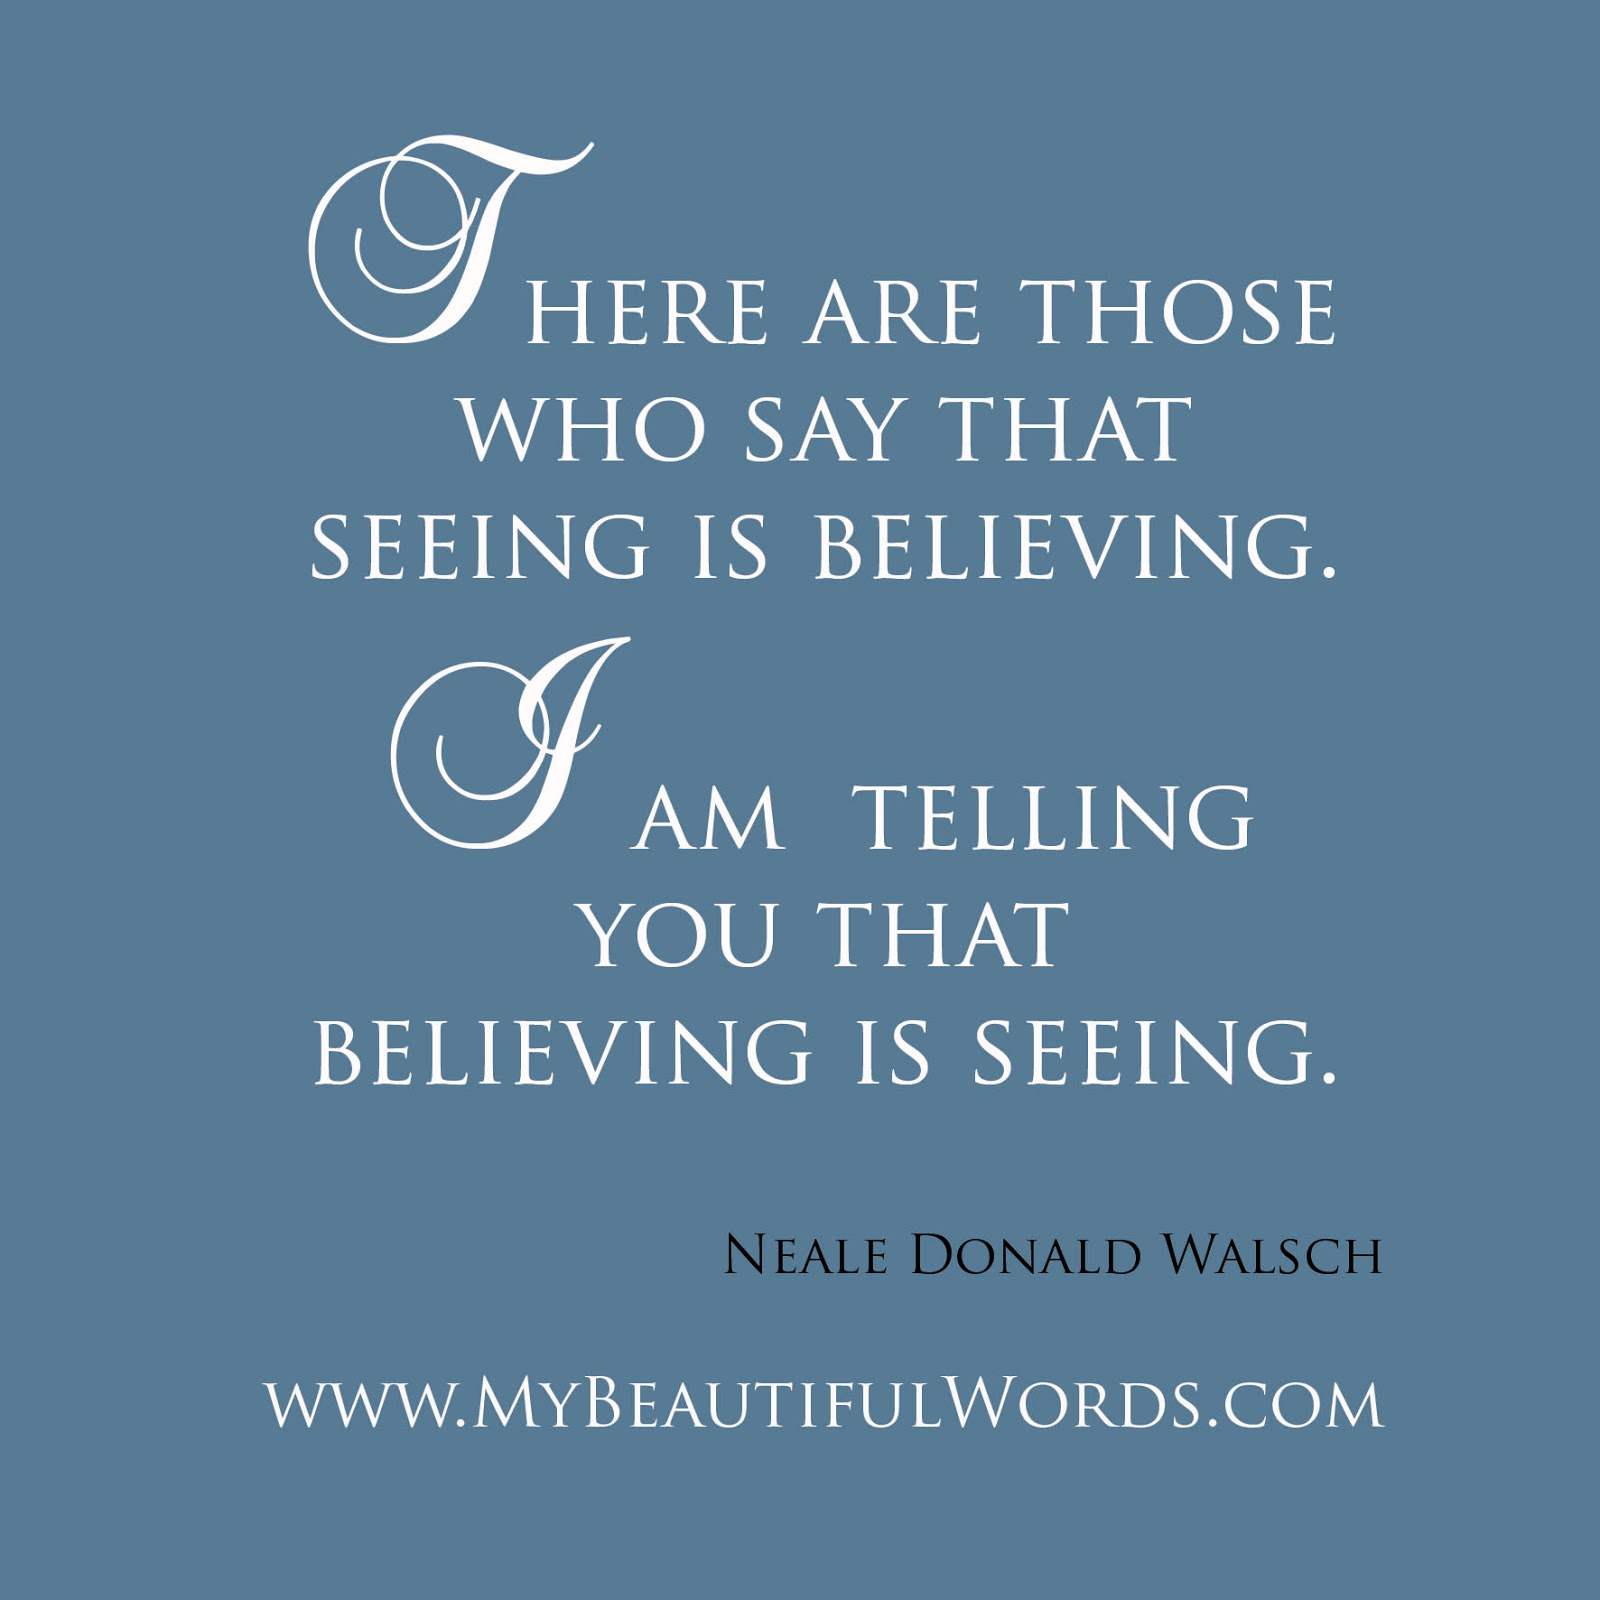 Neale Donald Walsch's quote #4